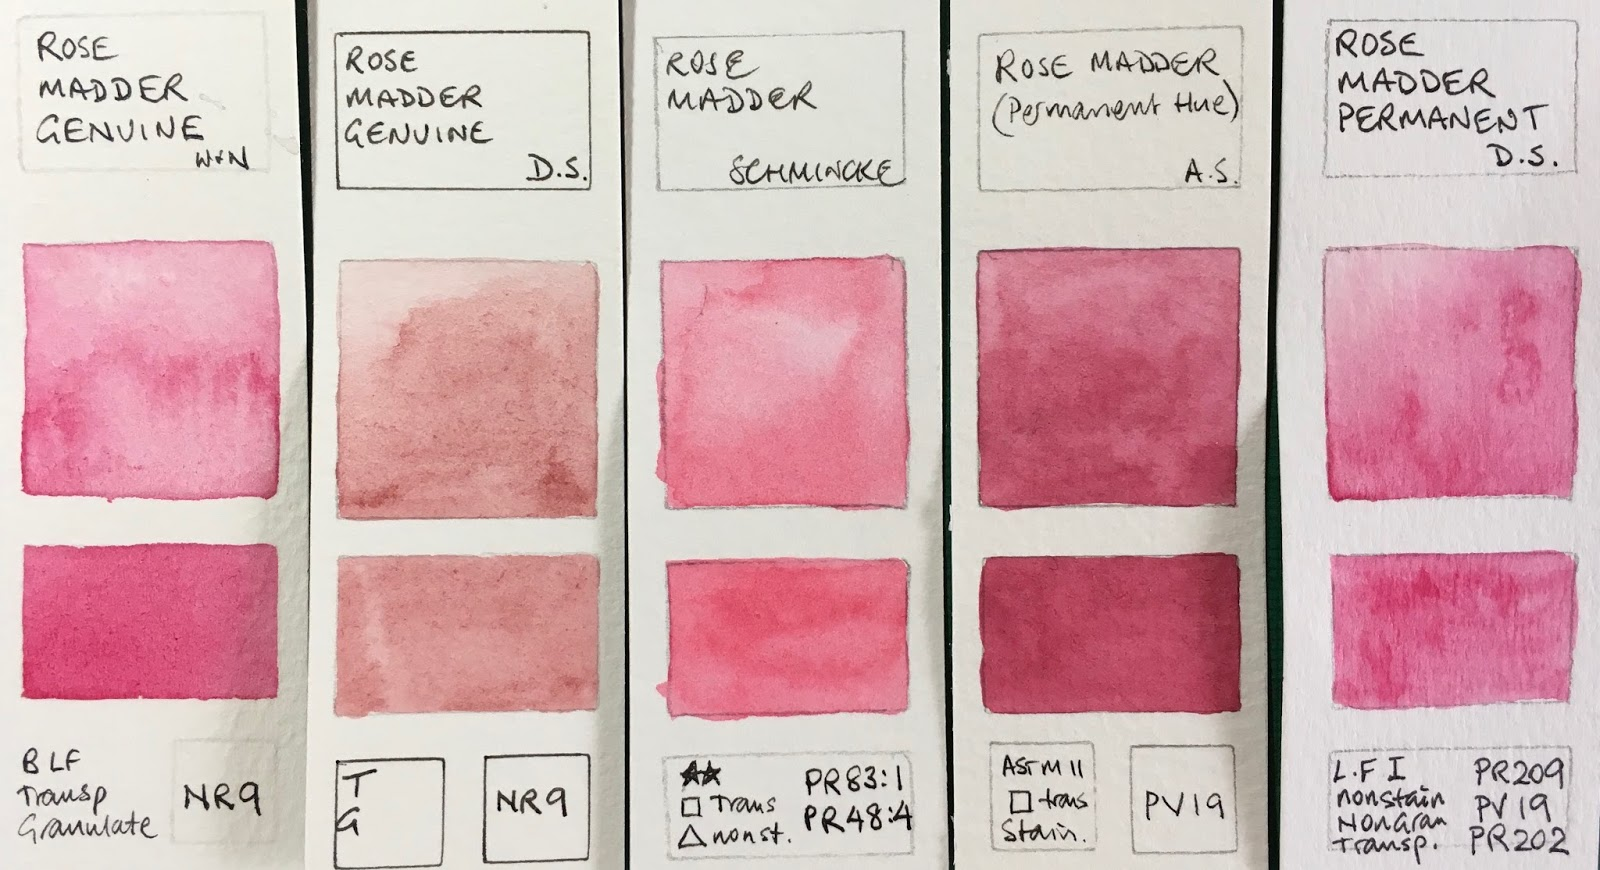 When You See The Range Of Hue In Genuine NR9 Between WN And DS Its Easy To Why Hues Also Vary Rose Madder Was Used For Portraiture As